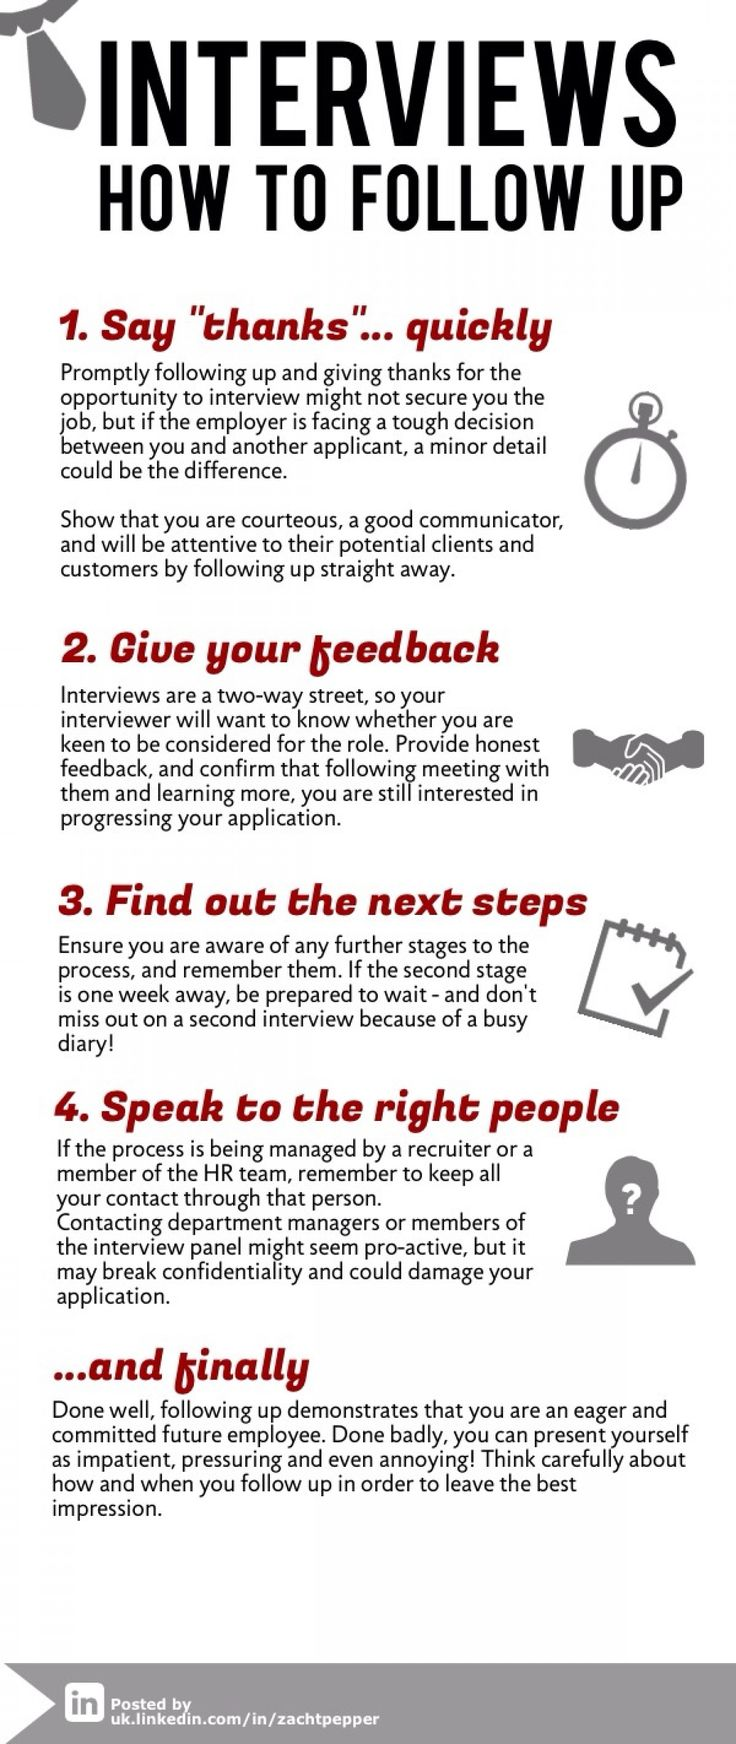 great tips for following up after an interview